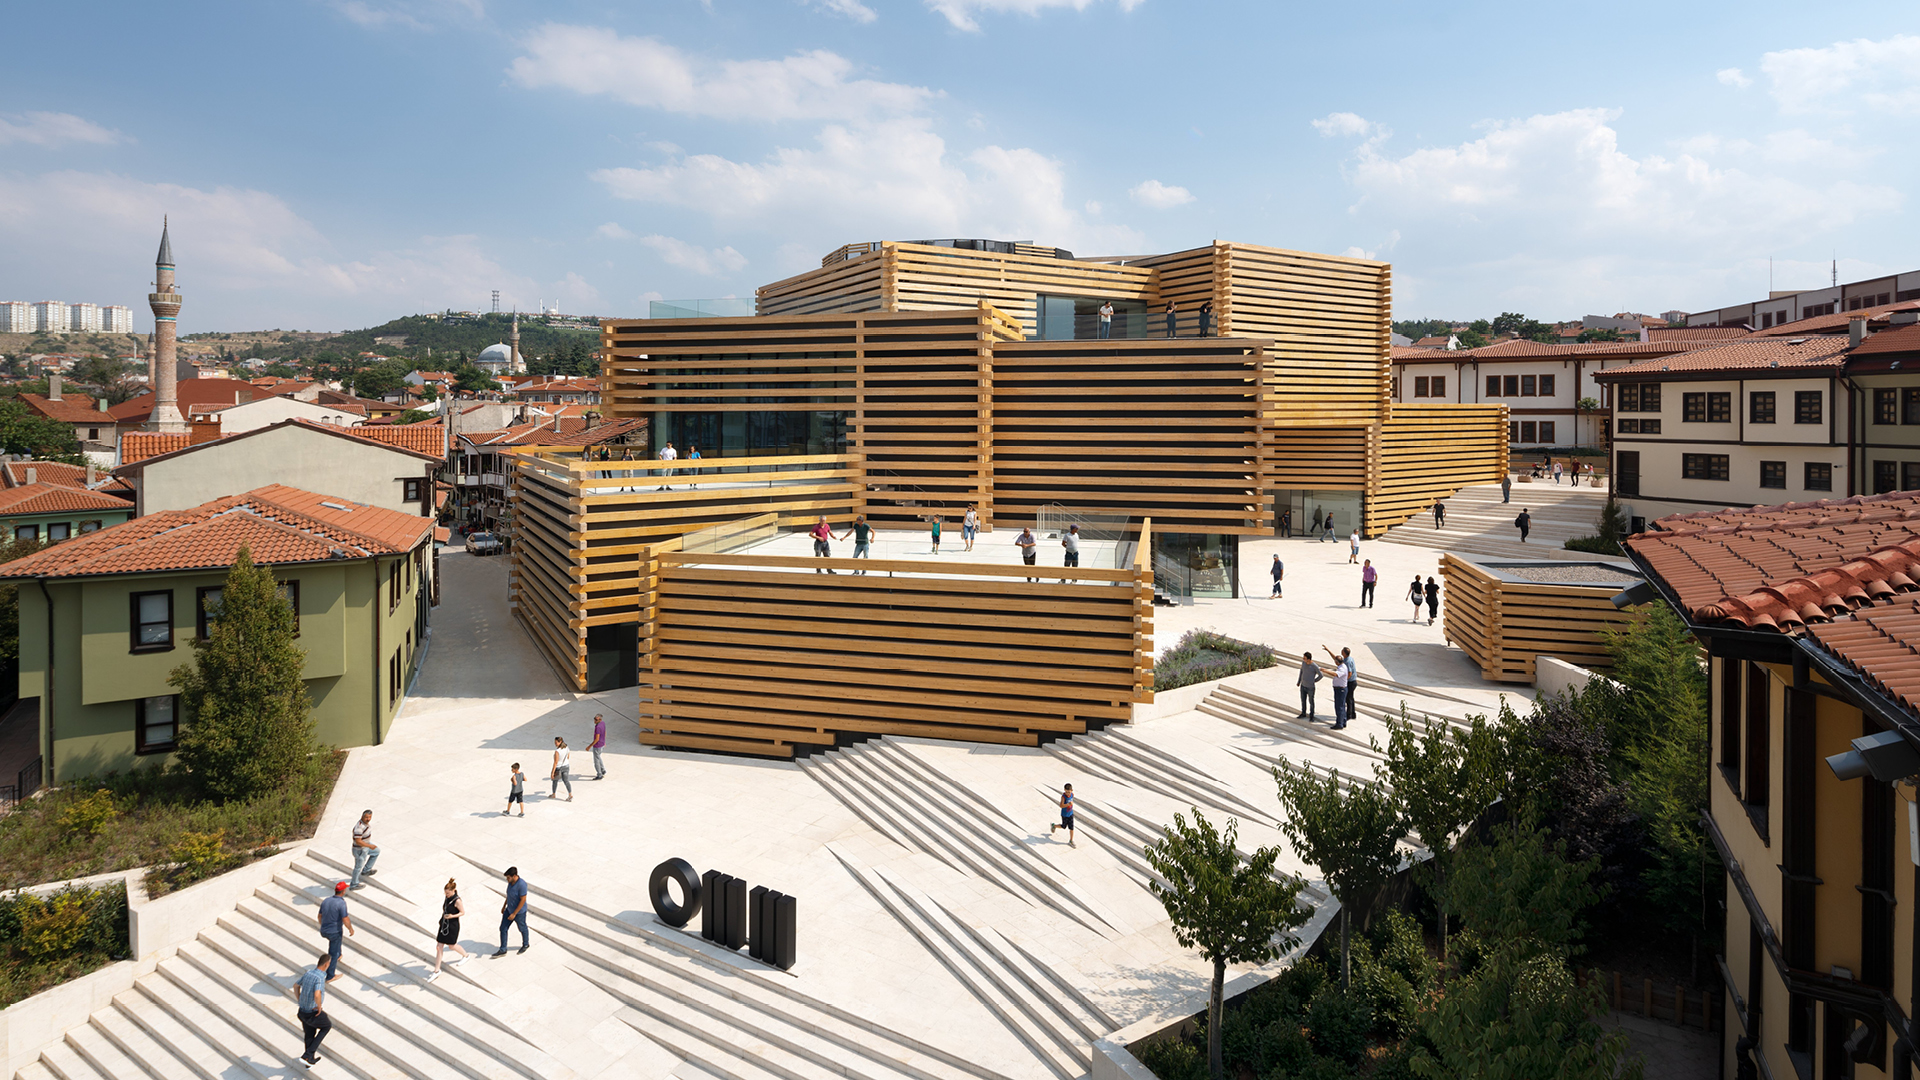 Odunpazari Modern Museum in Eskisehir by Kengo Kuma and Associates | Odunpazari Modern Museum| Kengo Kuma and Associates | STIR